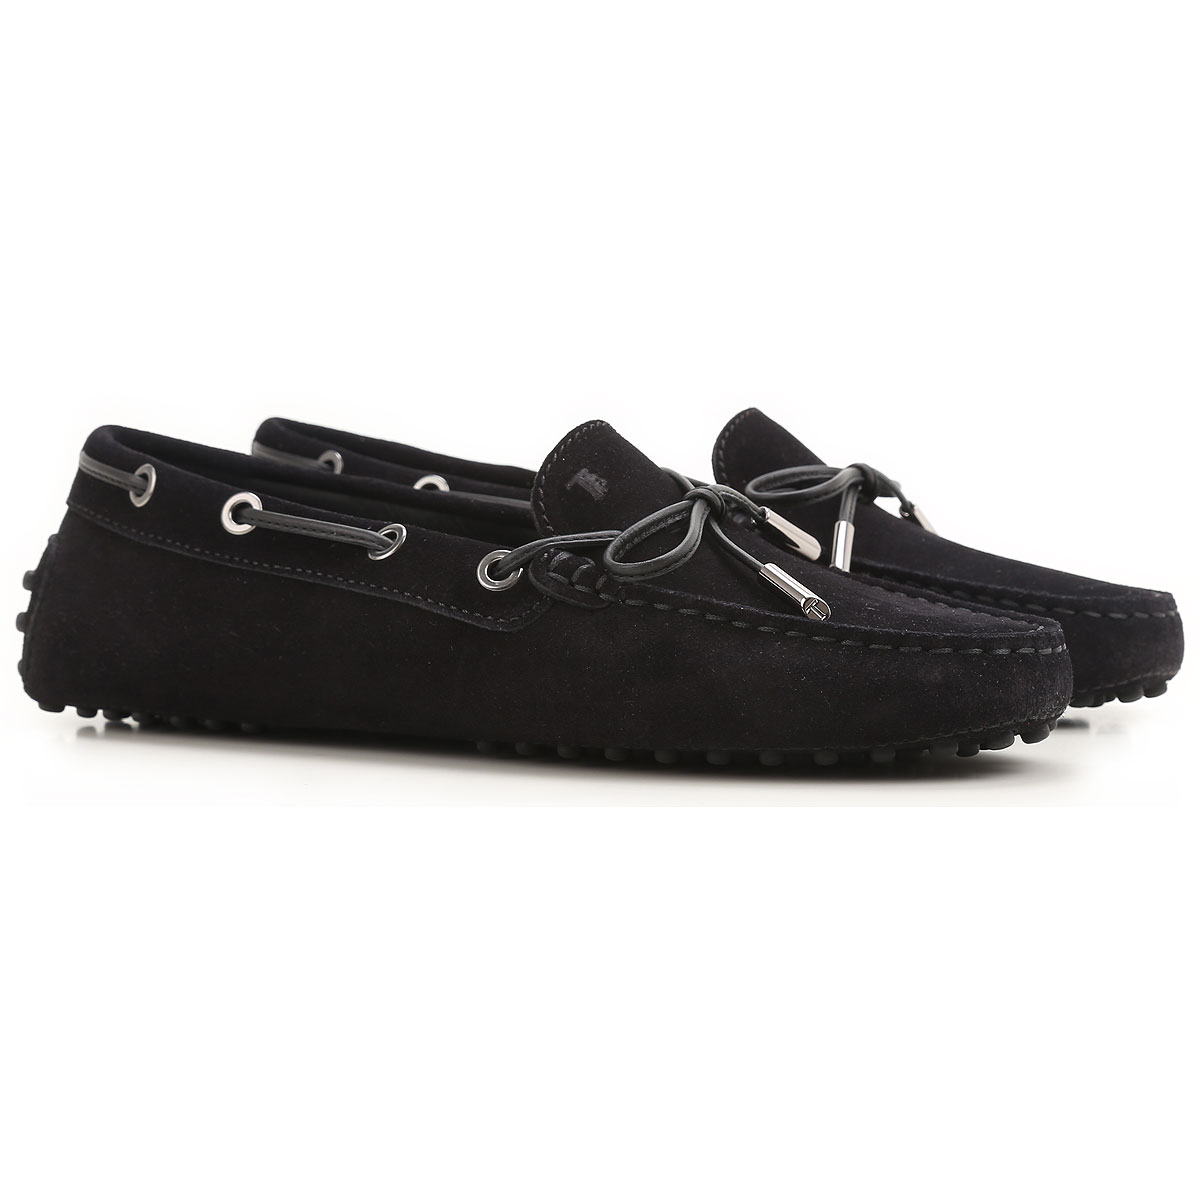 Tods Loafers for Women Black USA - GOOFASH